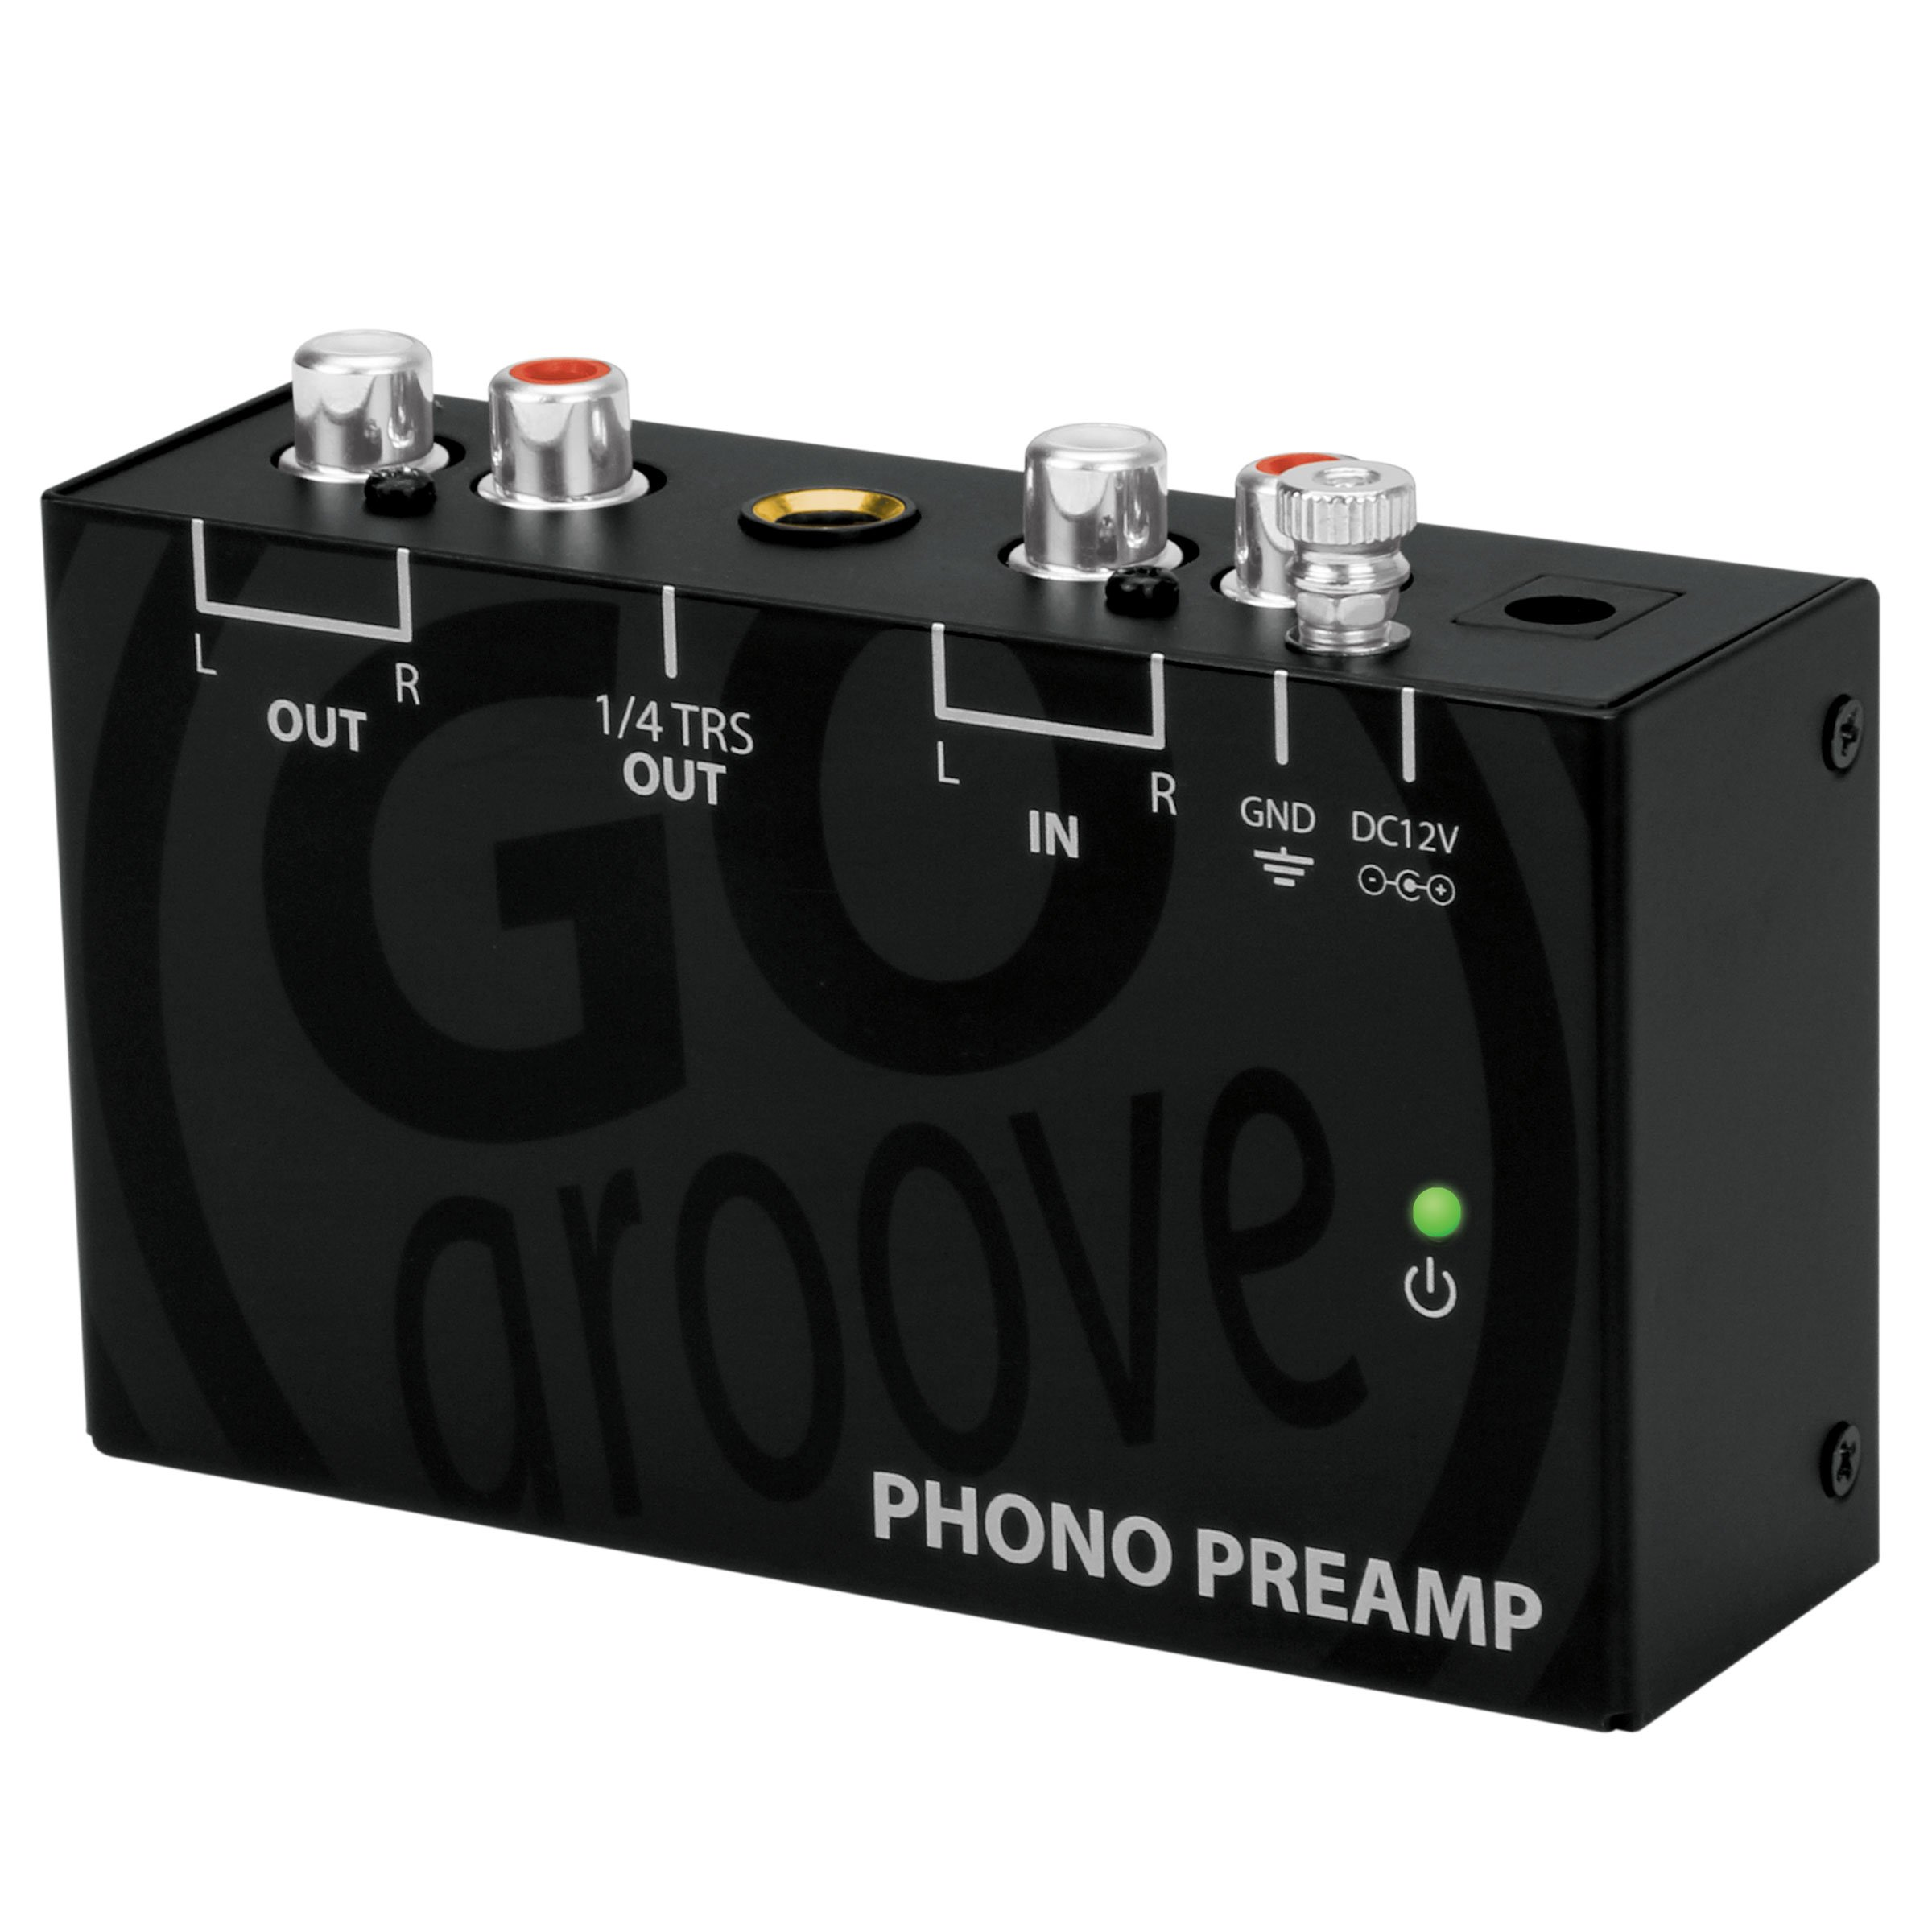 GOgroove Mini Phono Turntable Preamp Preamplifier with 12 Volt AC Adapter, RCA Input for Vinyl Record Player - Compatible with Audio Technica, Crosley, Jensen, Pioneer, 1byone and More Turntables by GOgroove